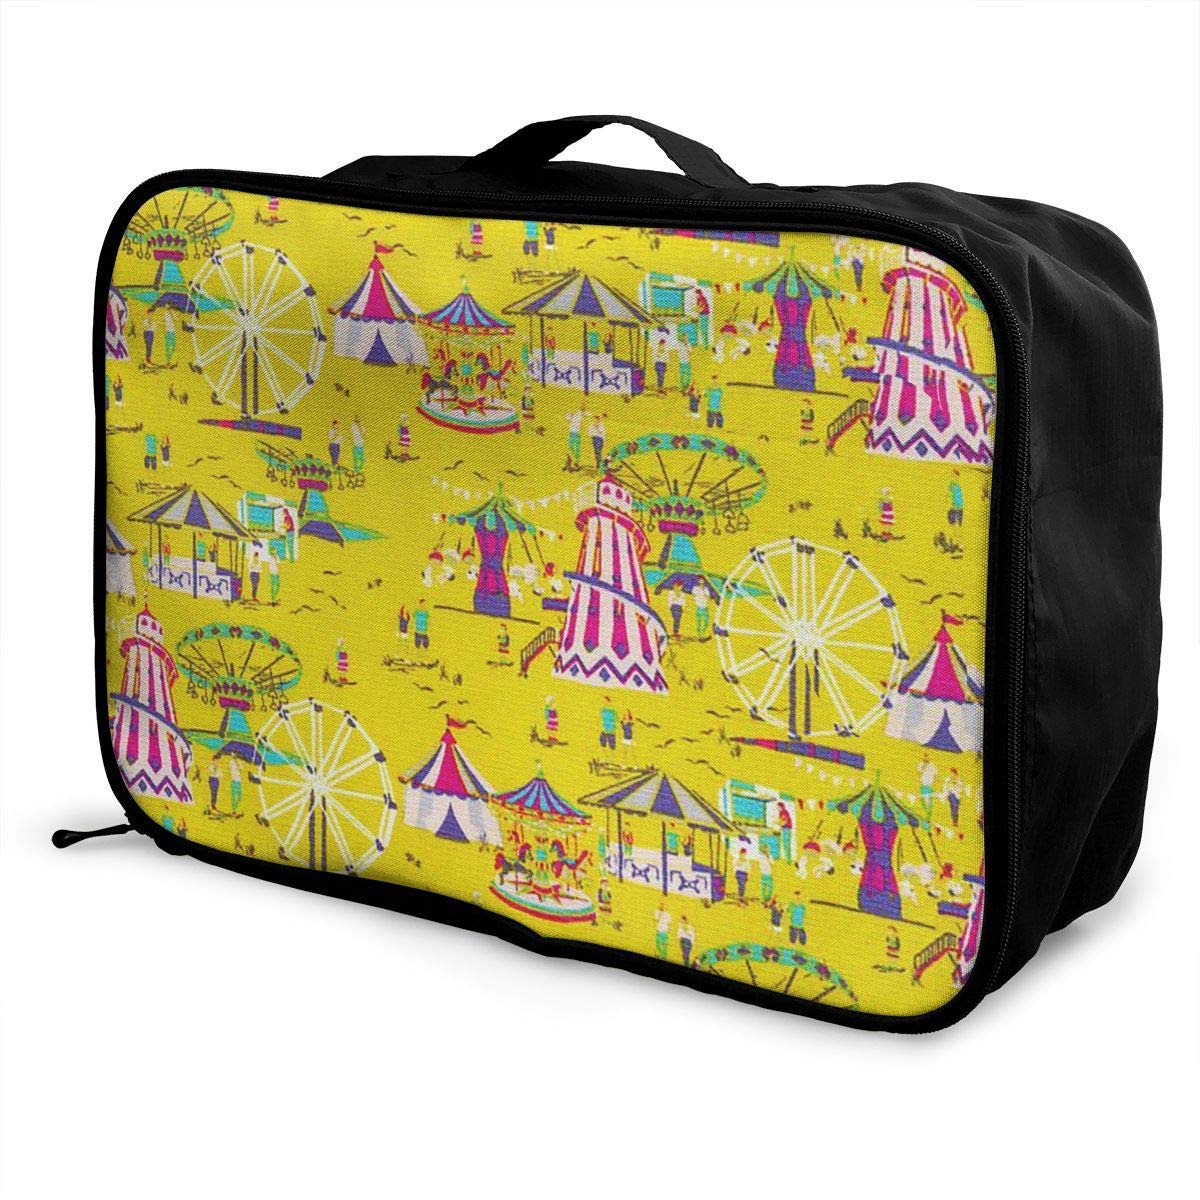 Portable Luggage Duffel Bag Circus Travel Bags Carry-on In Trolley Handle